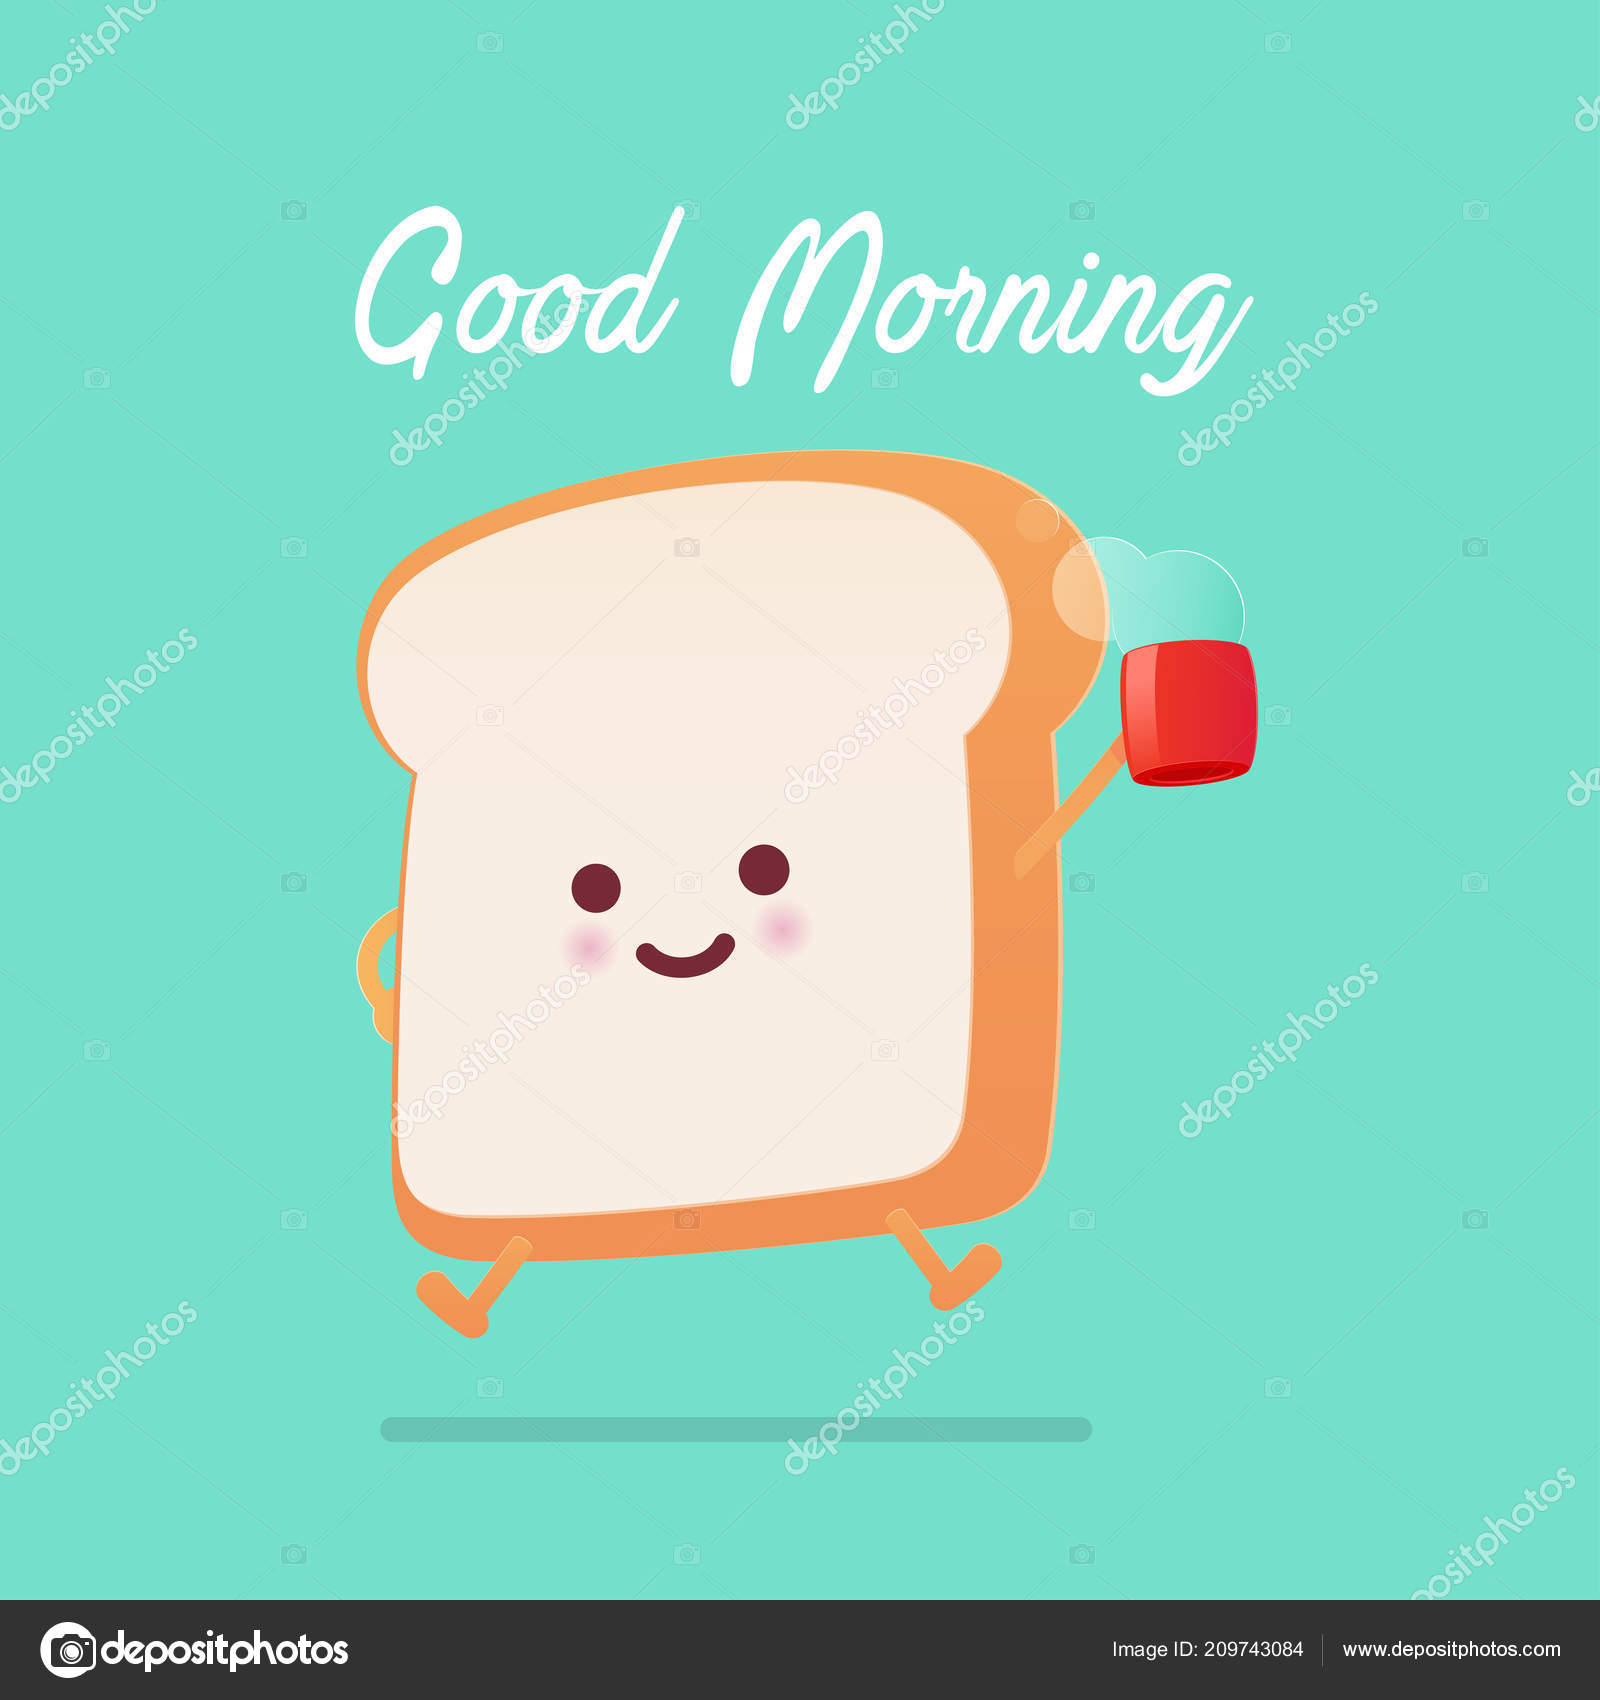 Good Morning Greeting On Toasted Bread Cartoon Stock Vector